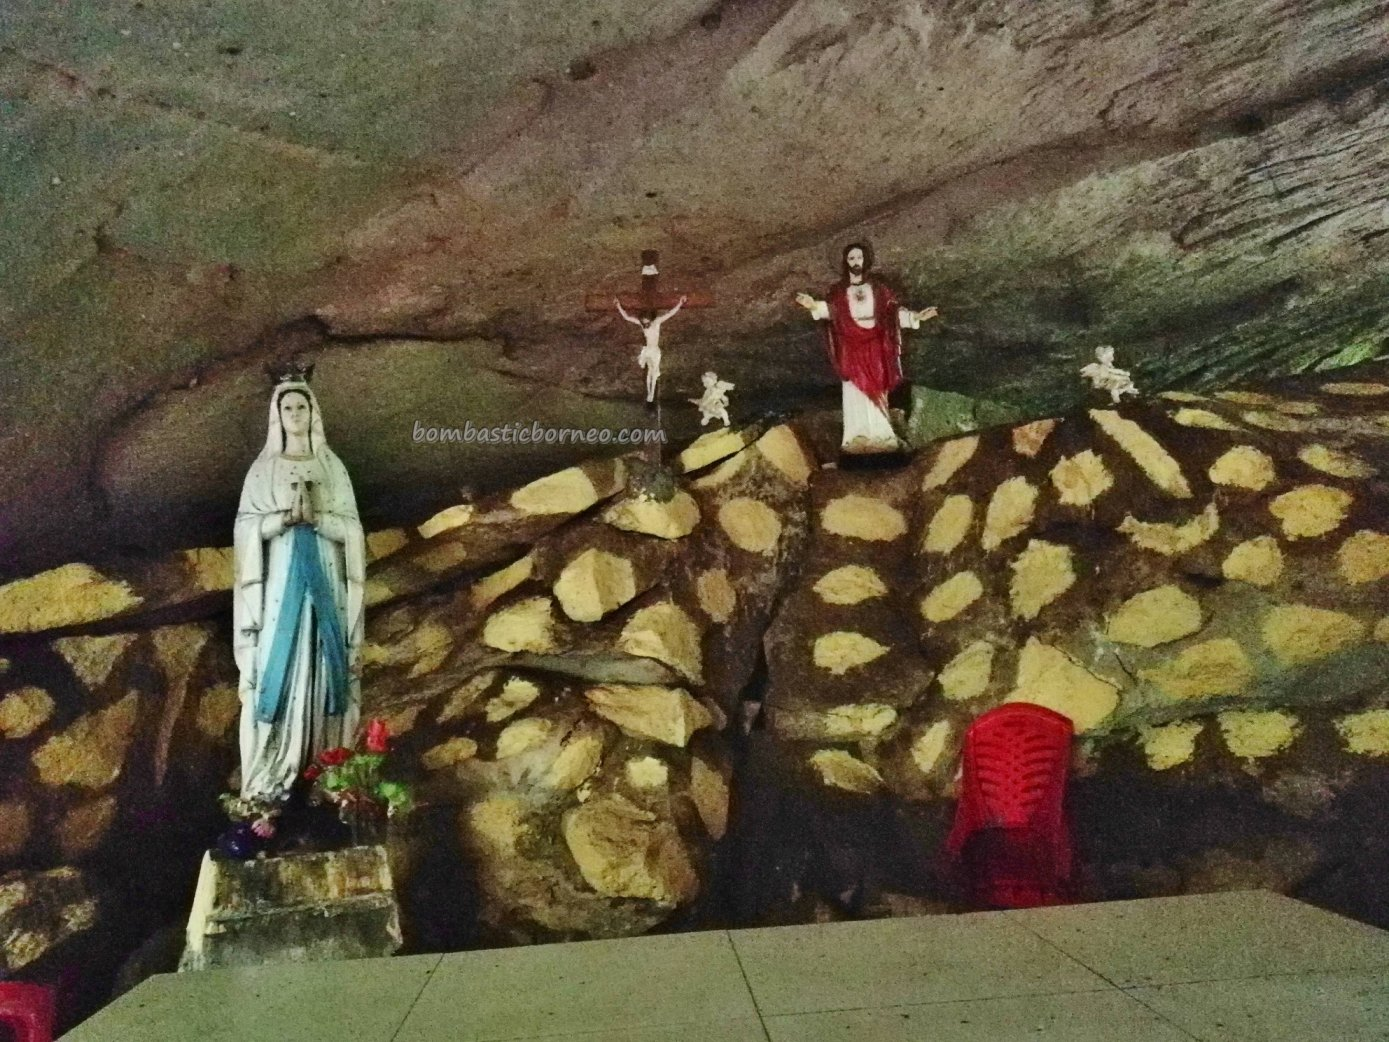 Virgin Mary Grotto, adventure, nature, authentic, destination, Borneo, Indonesia, Sajingan Besar, Dusun Sasak, Obyek wisata, travel guide, crossborder, 婆罗洲旅游景点, 三发玛丽石窟